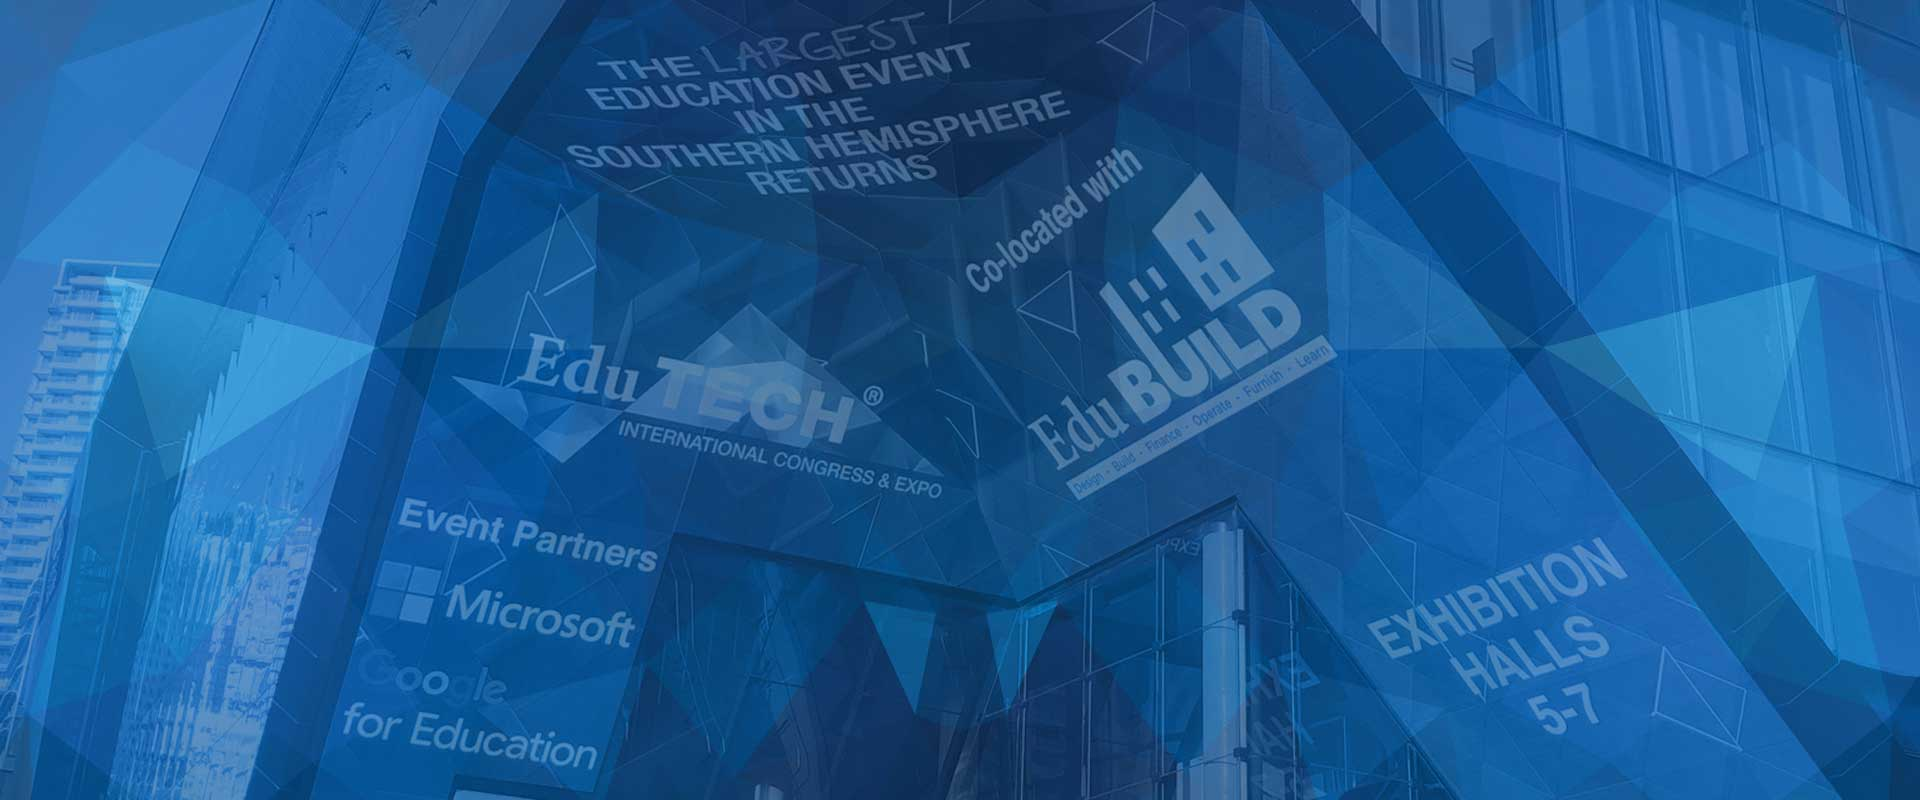 EduTECH/ EduBUILD Co-Located Events